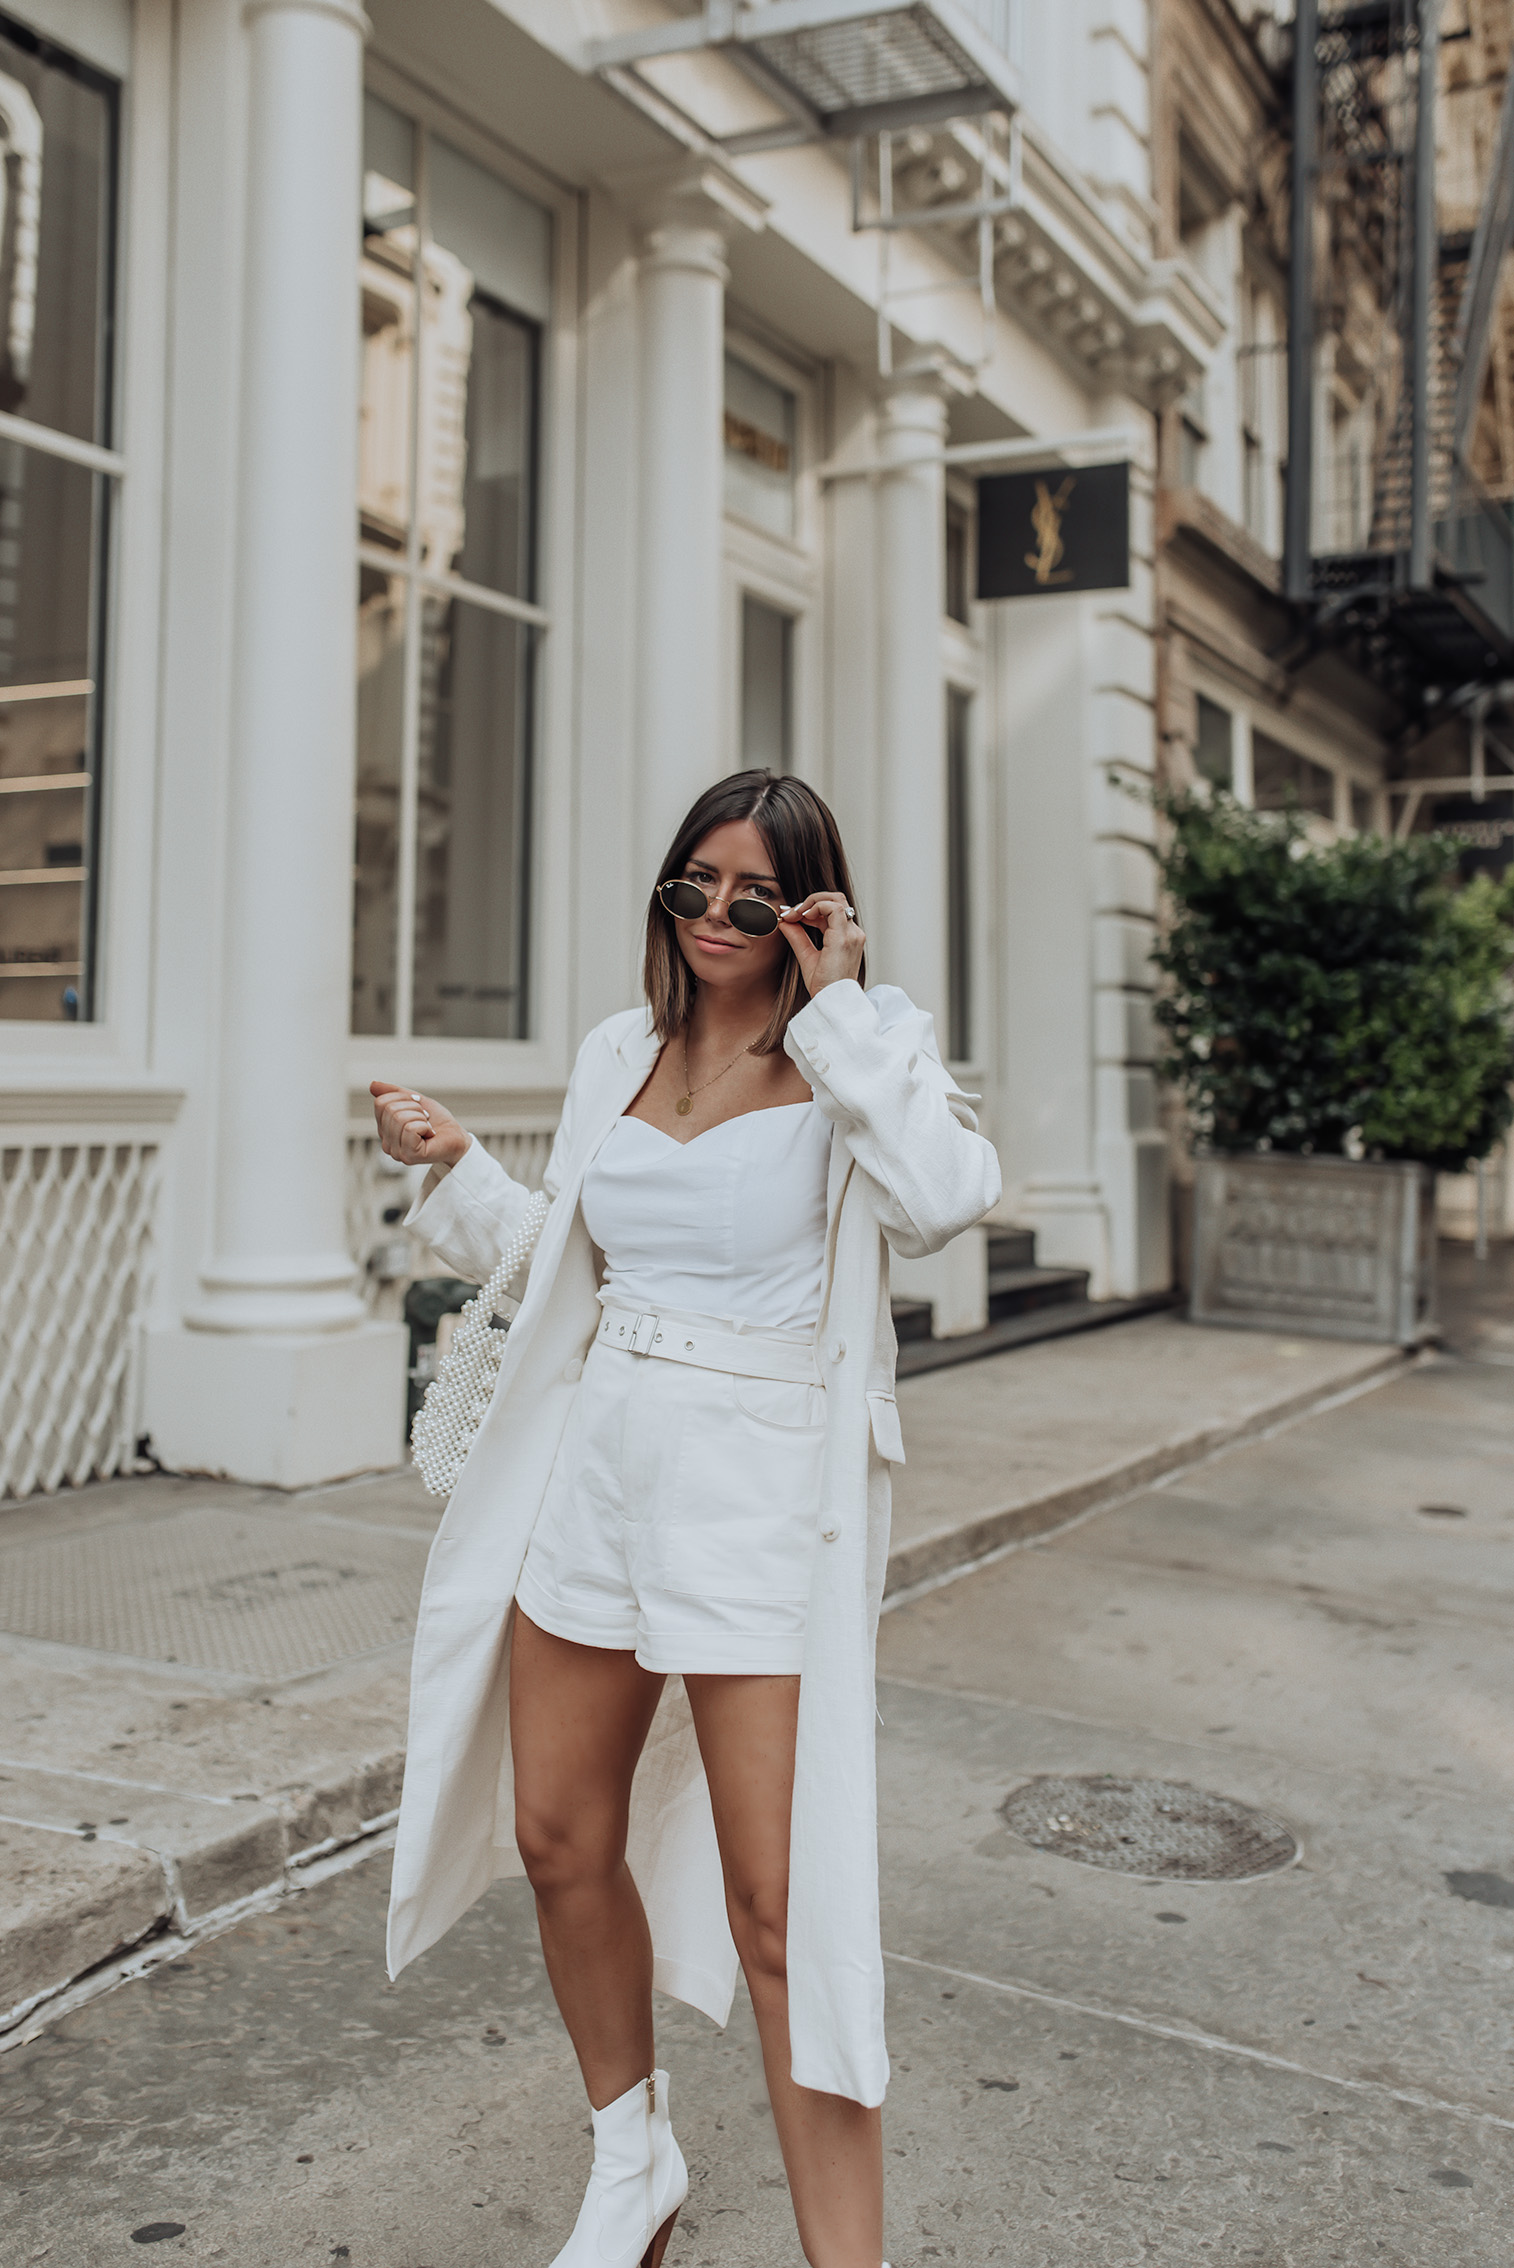 Happy Thursday babes! Gosh this week just flew by! I feel like time goes even faster once you become a mom because the multitasking all day long is super real. Haha! But I wouldn't trade the madness for anything!  Anyway I'm super stoked to share this layered in white look with you guys today! I'm obsessed with white right now and the temps dropped a tiny bit so I was able to sneak in an extra layer. Insert this white linen trench, the perfect summer layer since linen is so breathable! #streetstyleblog